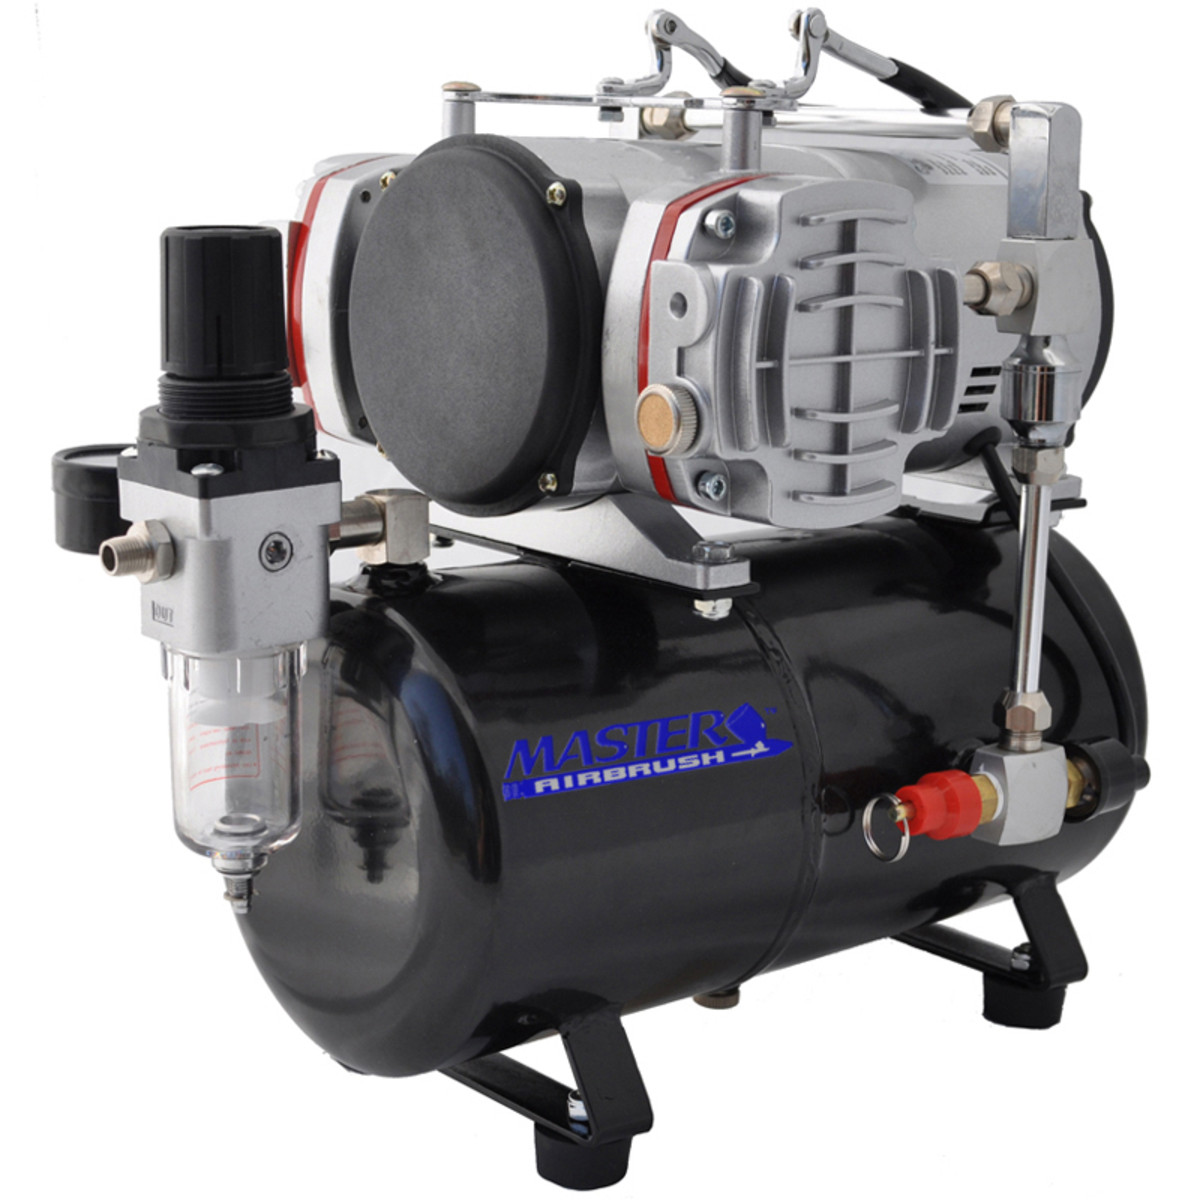 The Master Air-Compressor Buyer's Guide